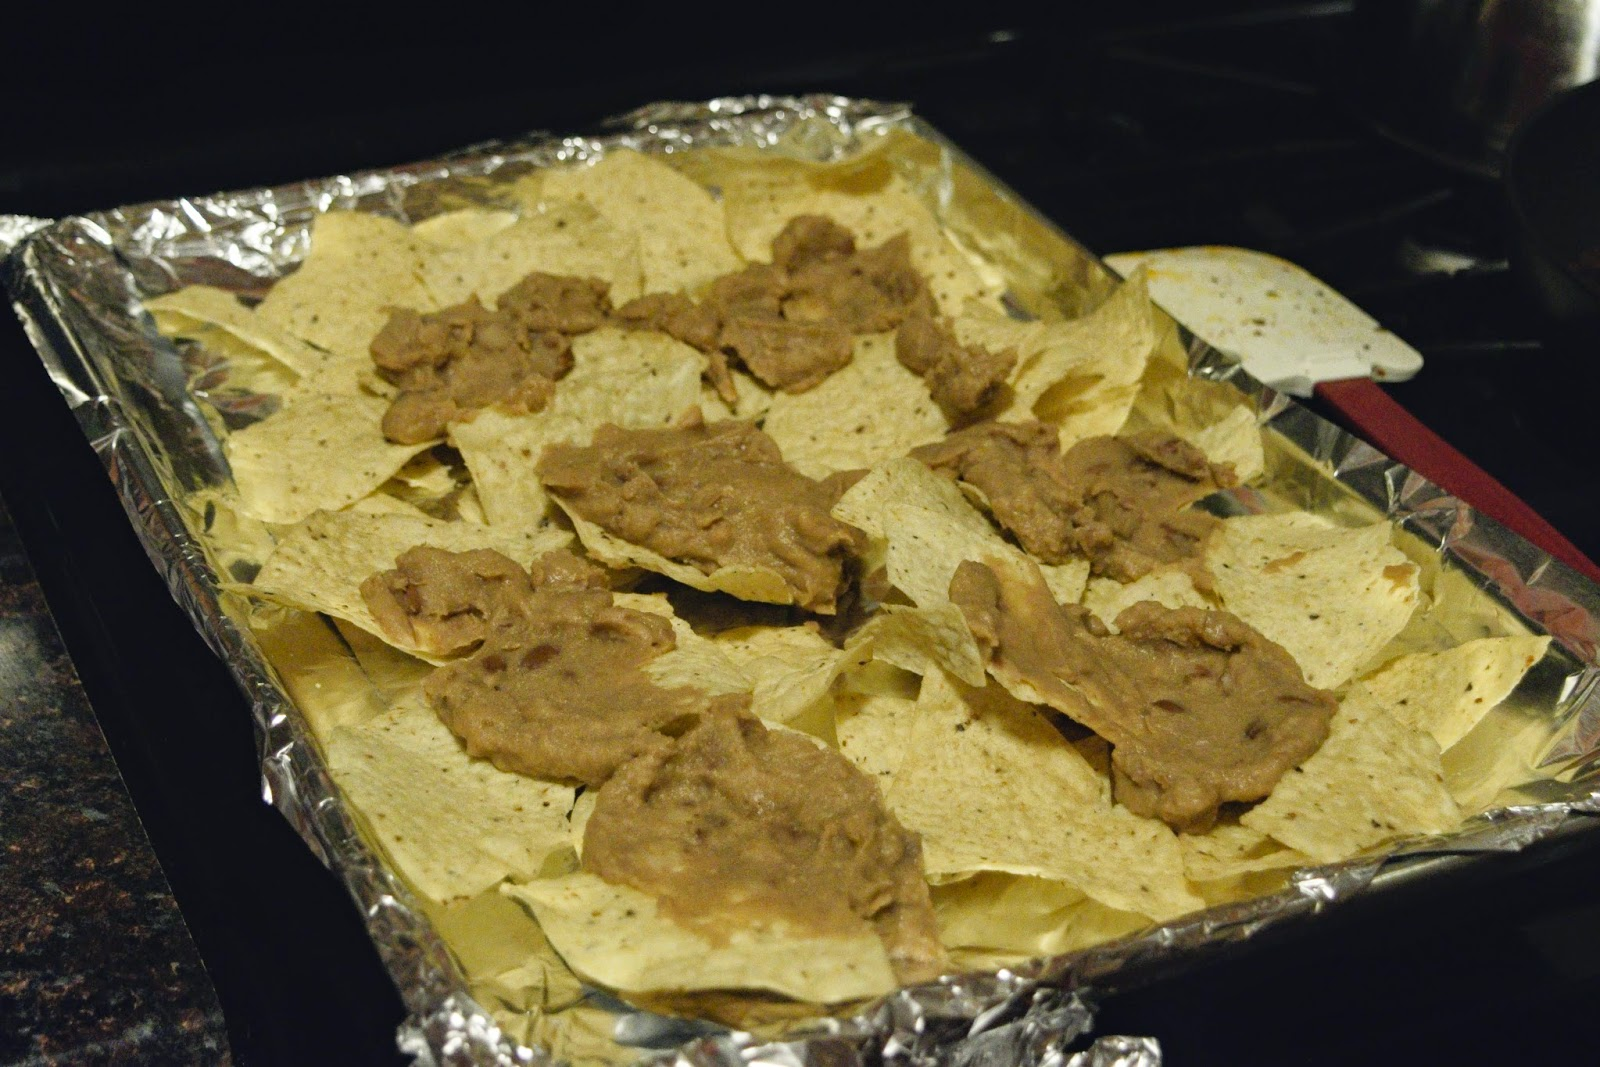 The refried beans being added to the tortilla chips for the nachos supreme recipe.